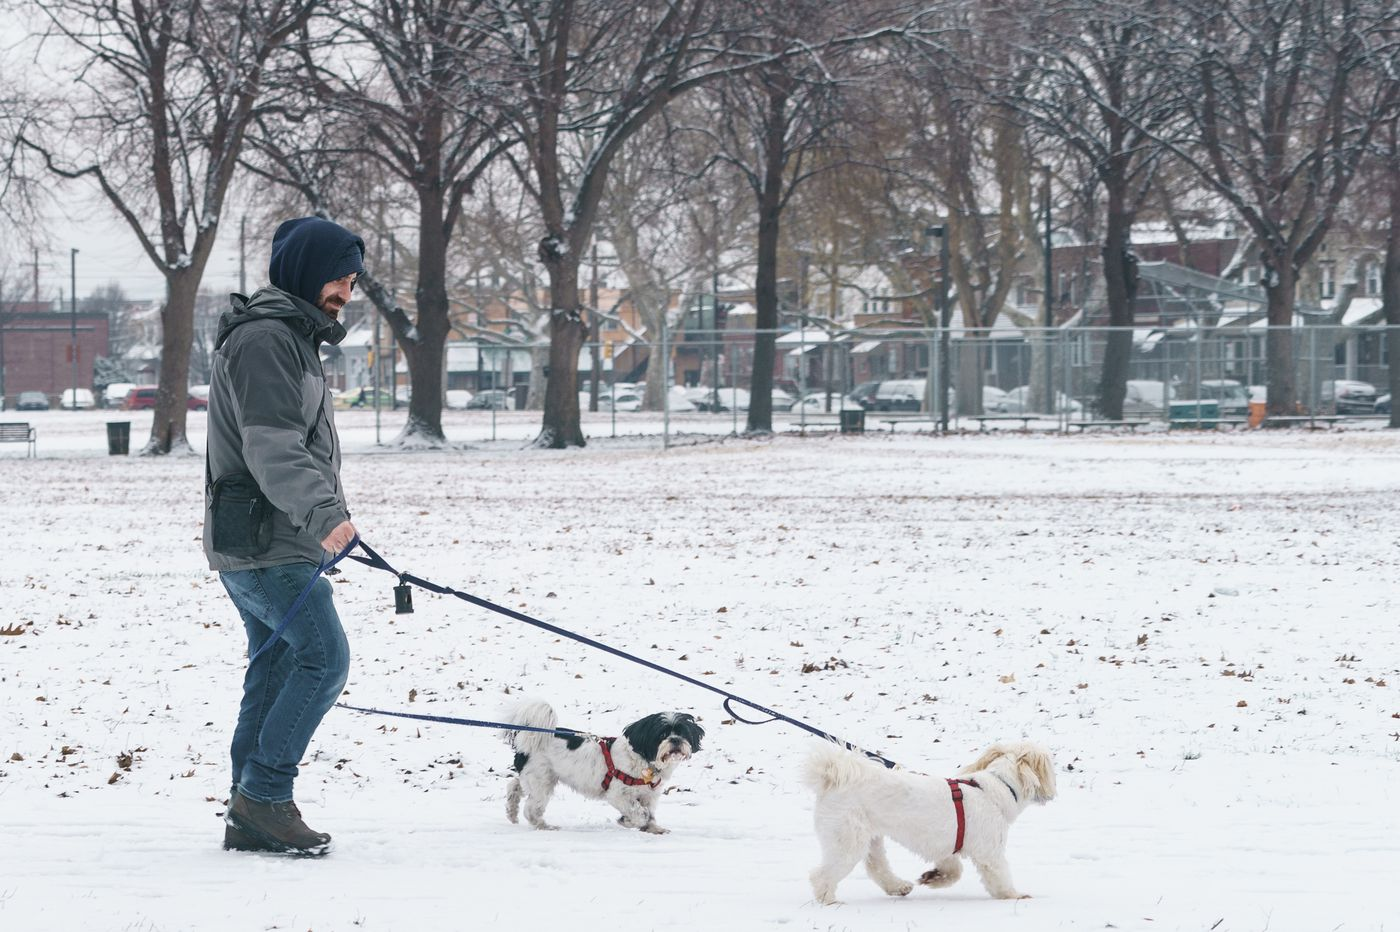 Snow blankets Philly area in prelude to major winter storm; what to expect this weekend